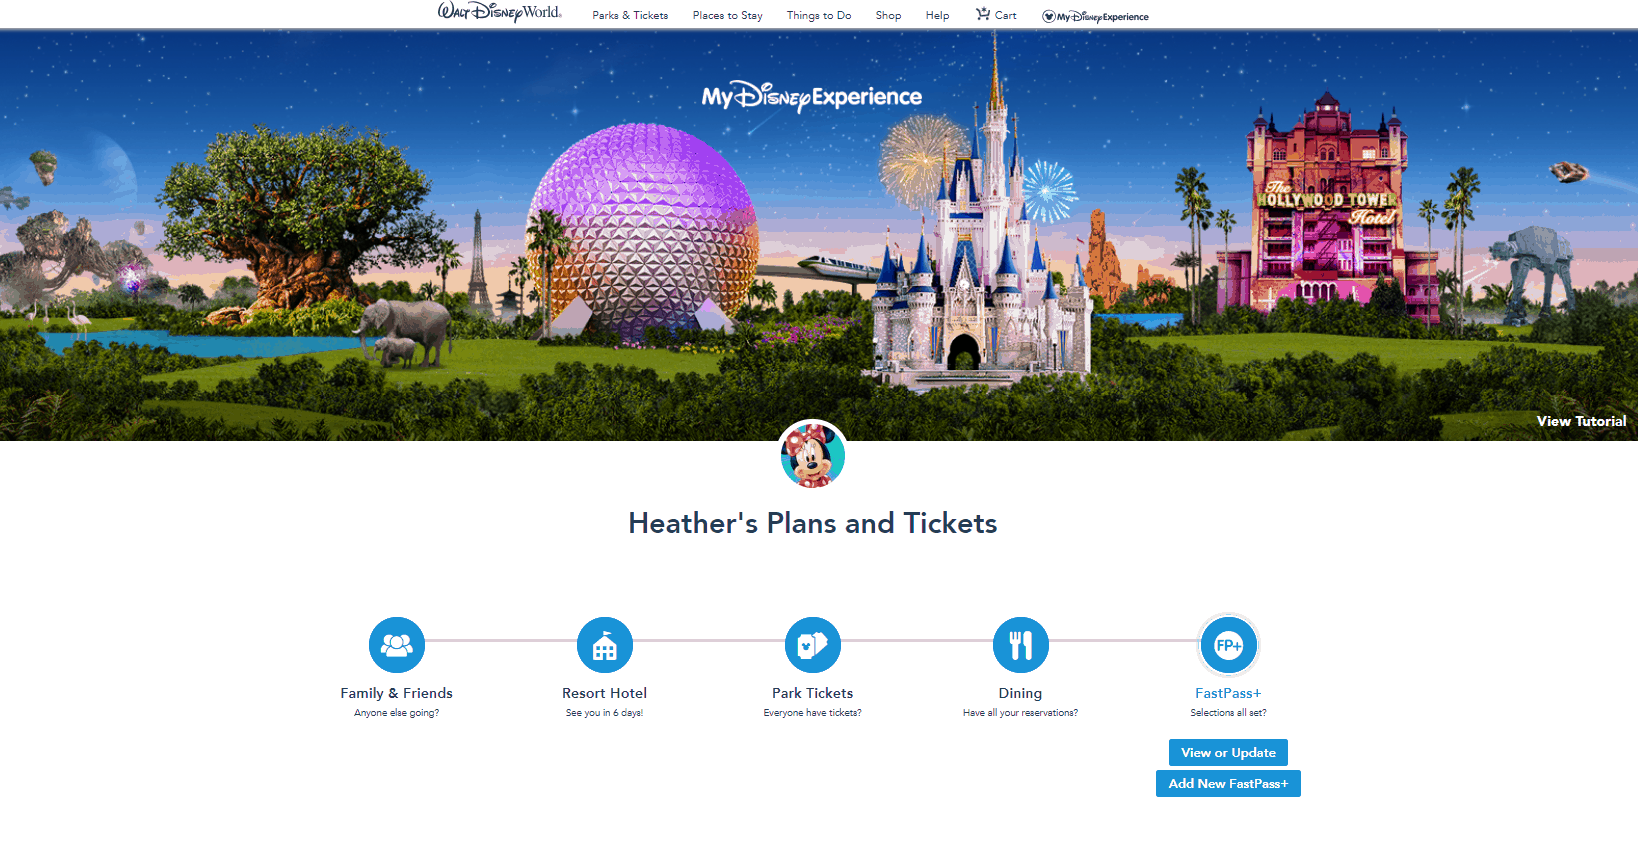 FastPass+ in My Disney Experience